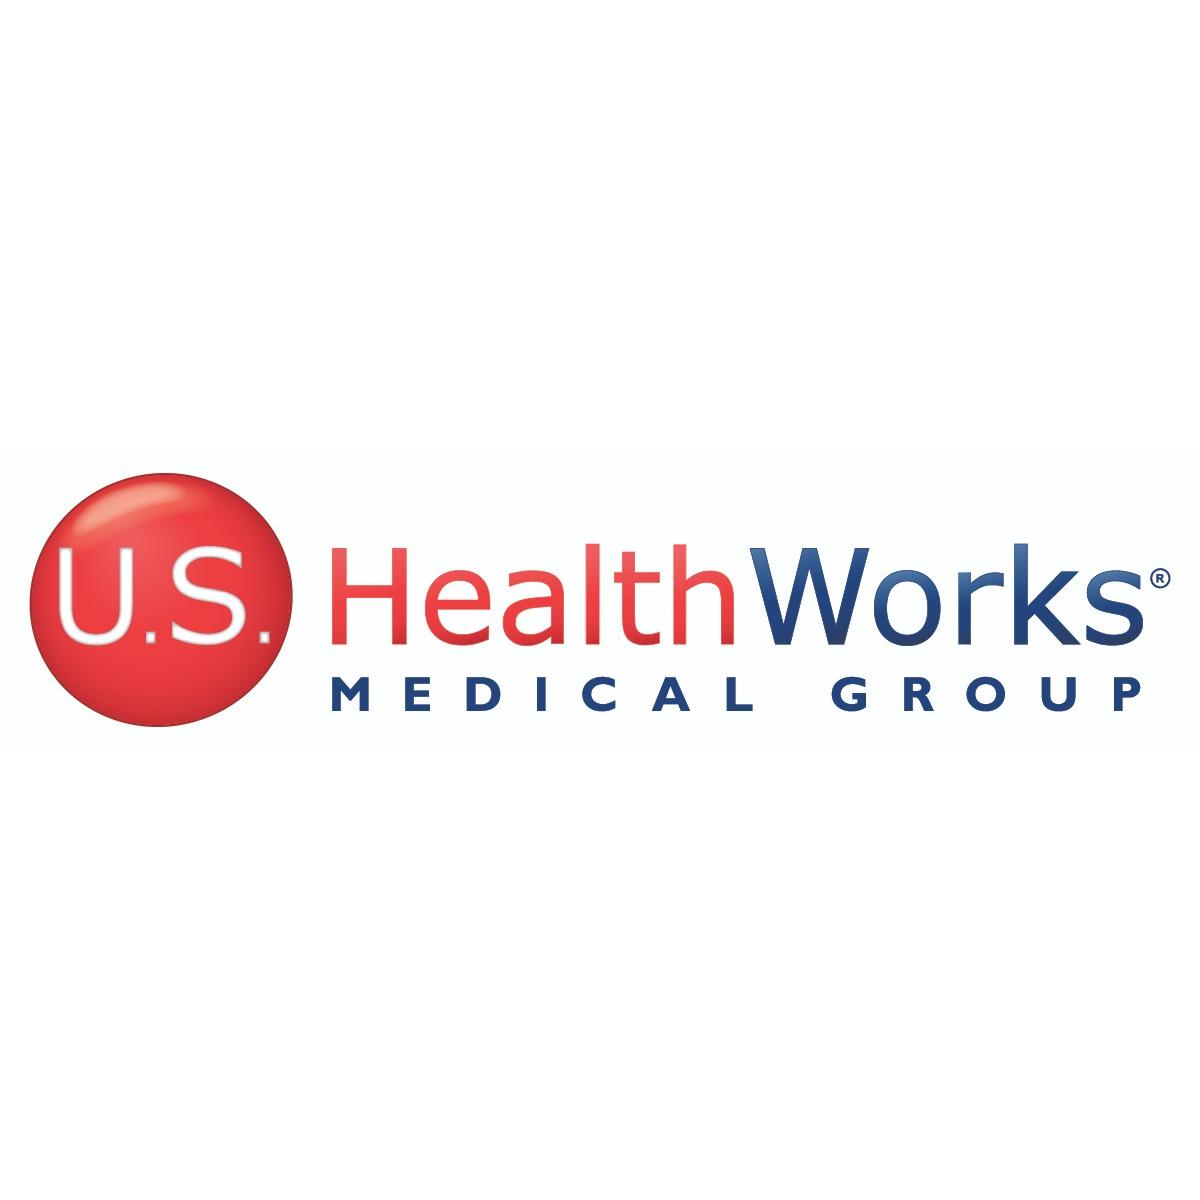 U.S. HealthWorks Urgent Care - El Monte, CA - Occupational Medicine